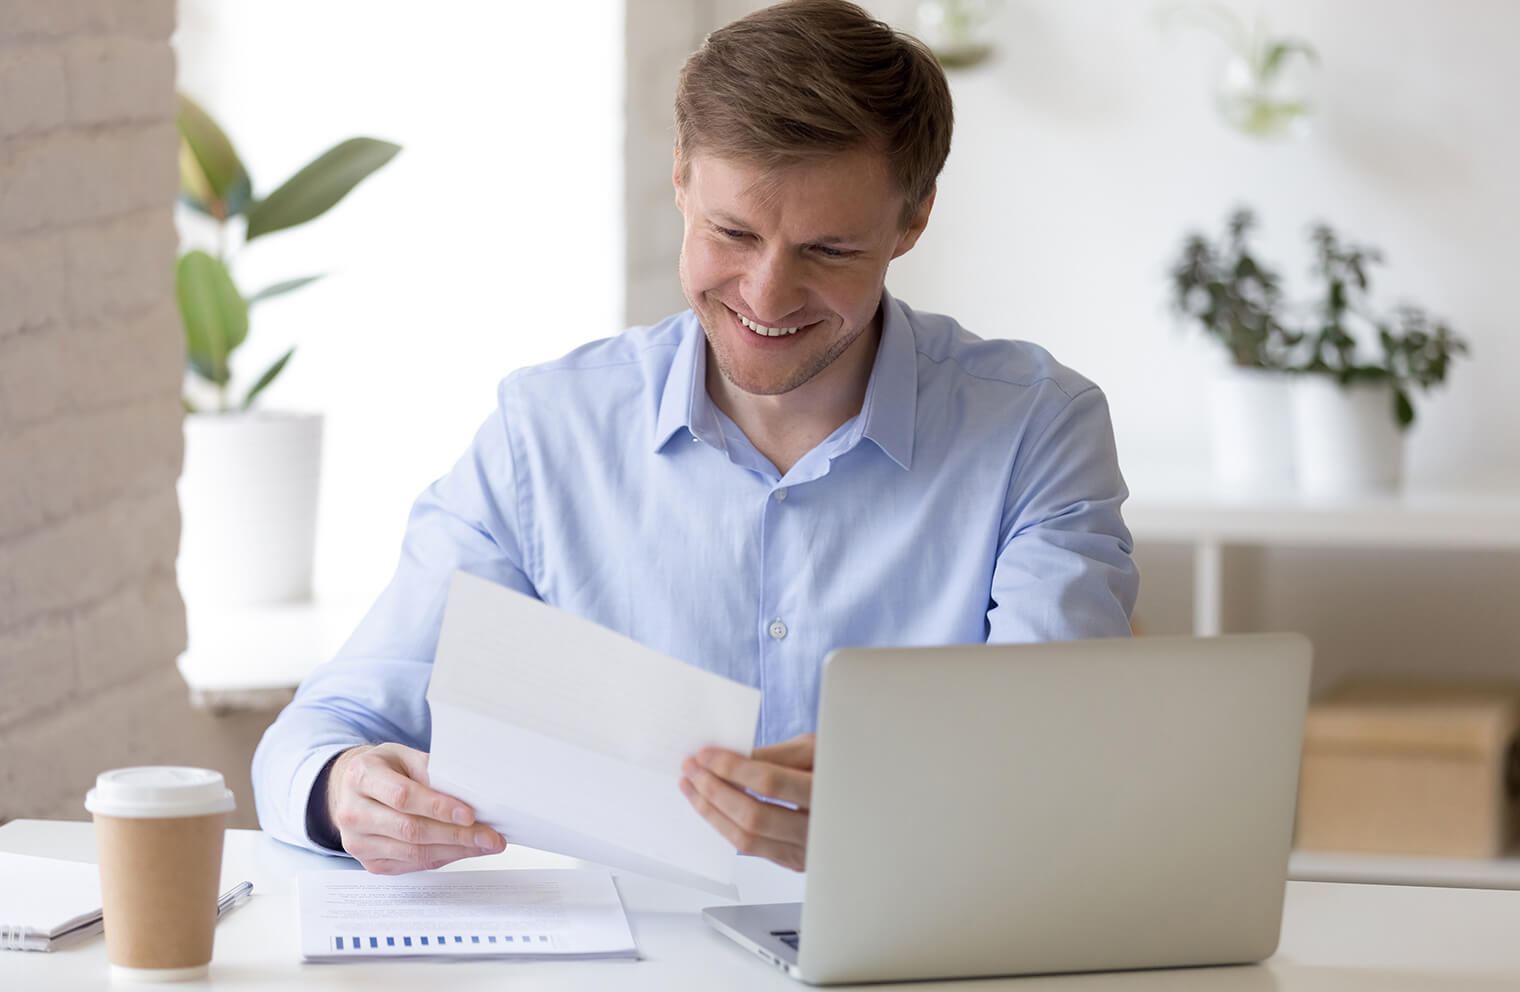 Picture of a man in a blue dress shirt, smiling and holding a piece of paper. He is sitting at  a white desk that has notebooks, coffee, documents, and a laptop on it.